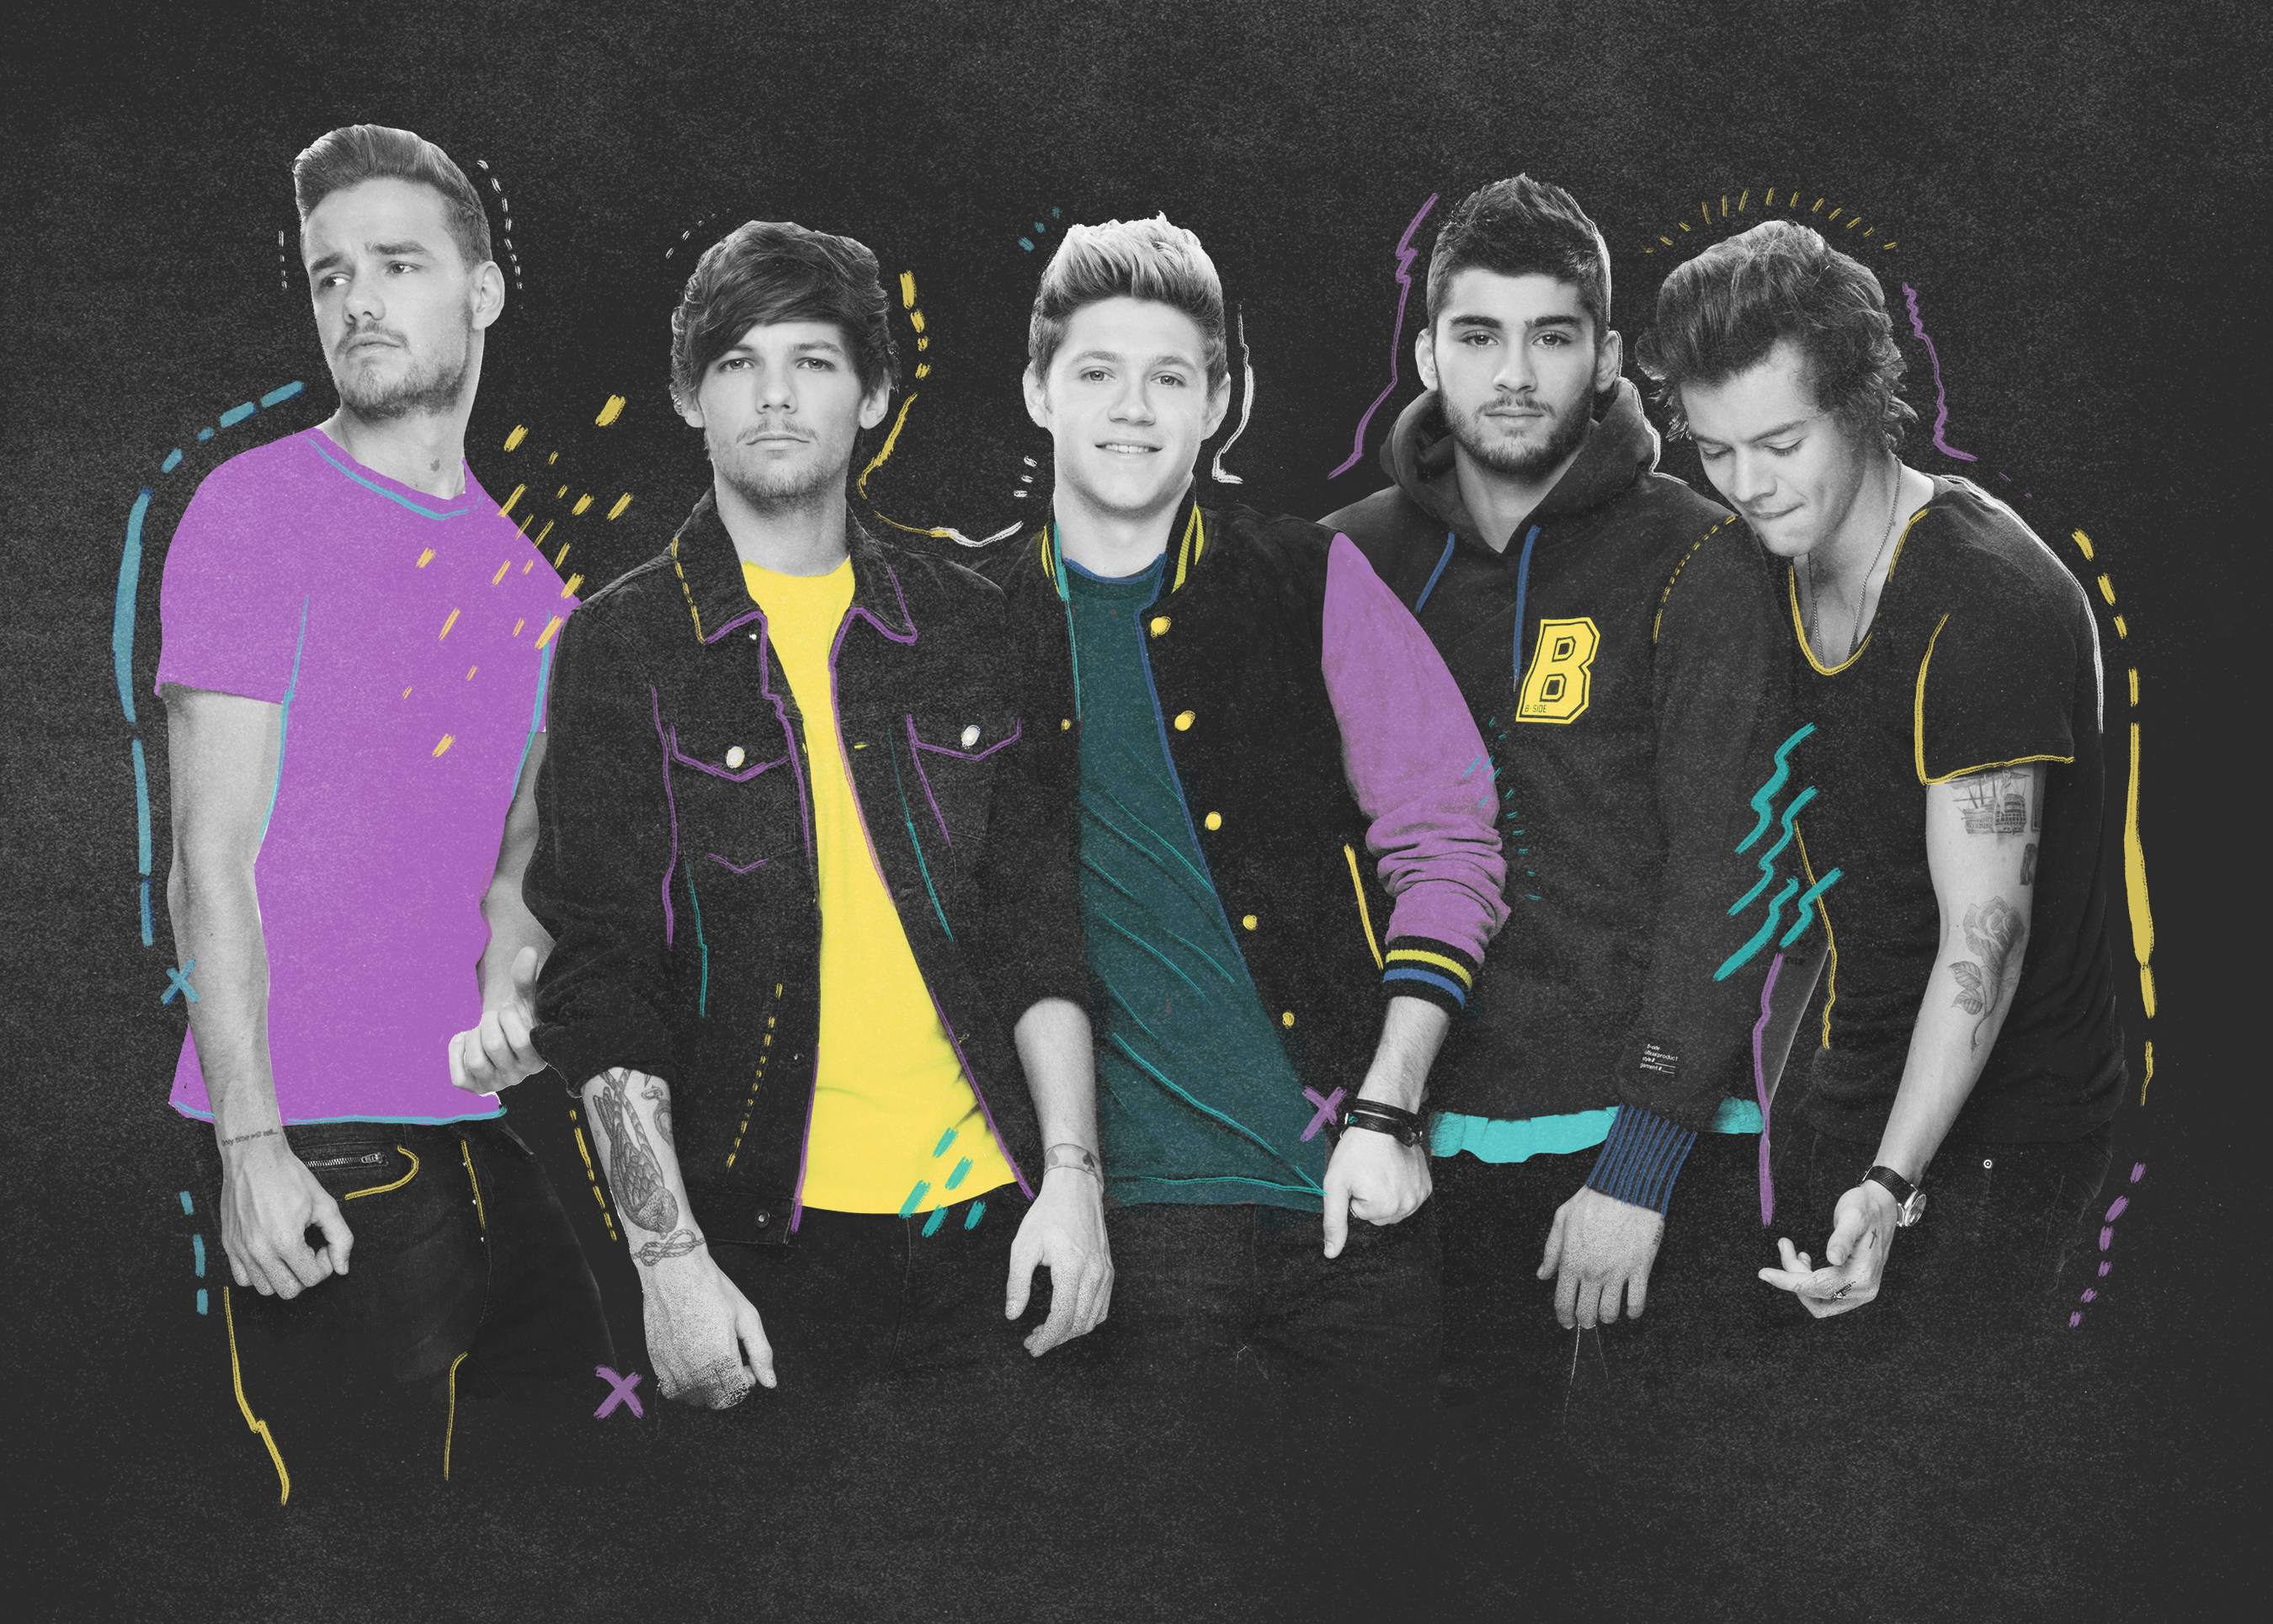 ONE DIRECTION ANNOUNCES 2015 EUROPEAN AND NORTH AMERICAN STADIUM TOUR